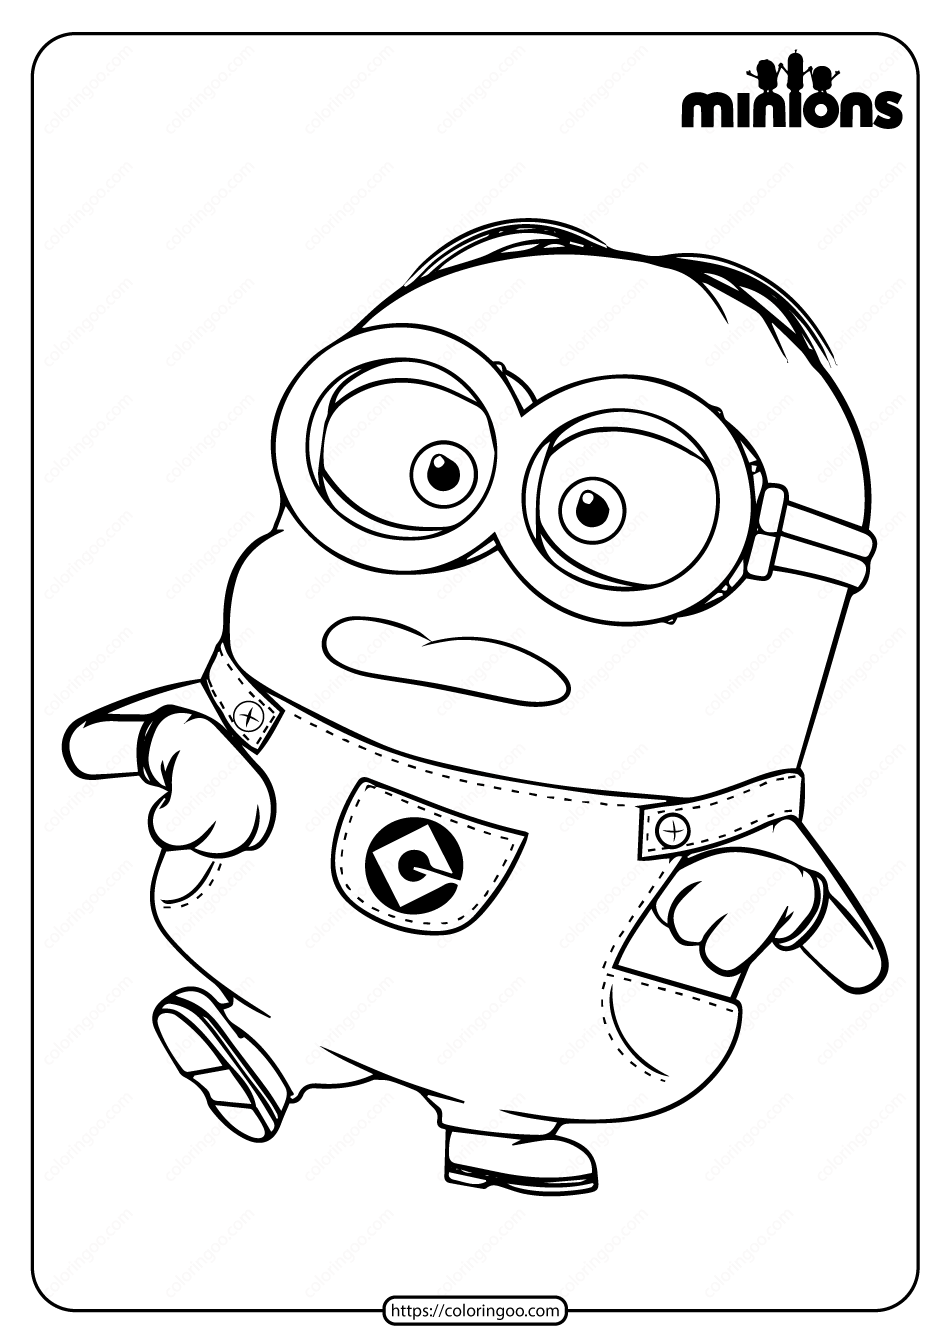 printable minions minion coloring pages bob all versions and poses printable minions